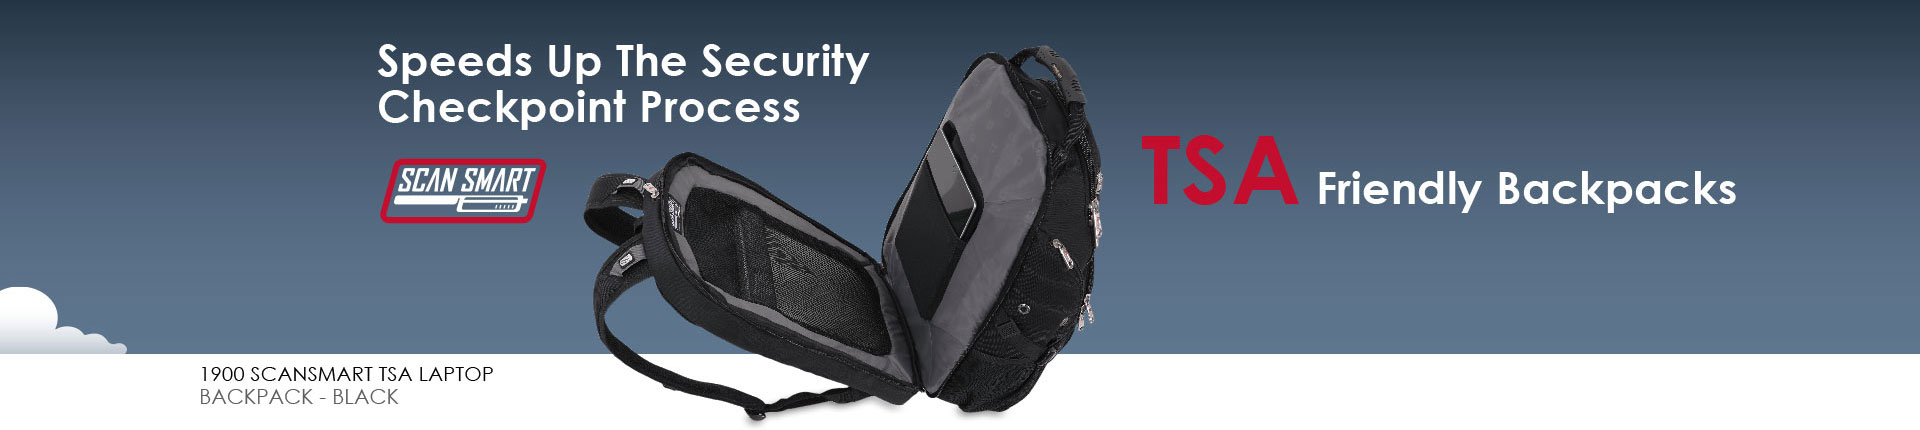 Swissgear TSA Friendly Backpacks